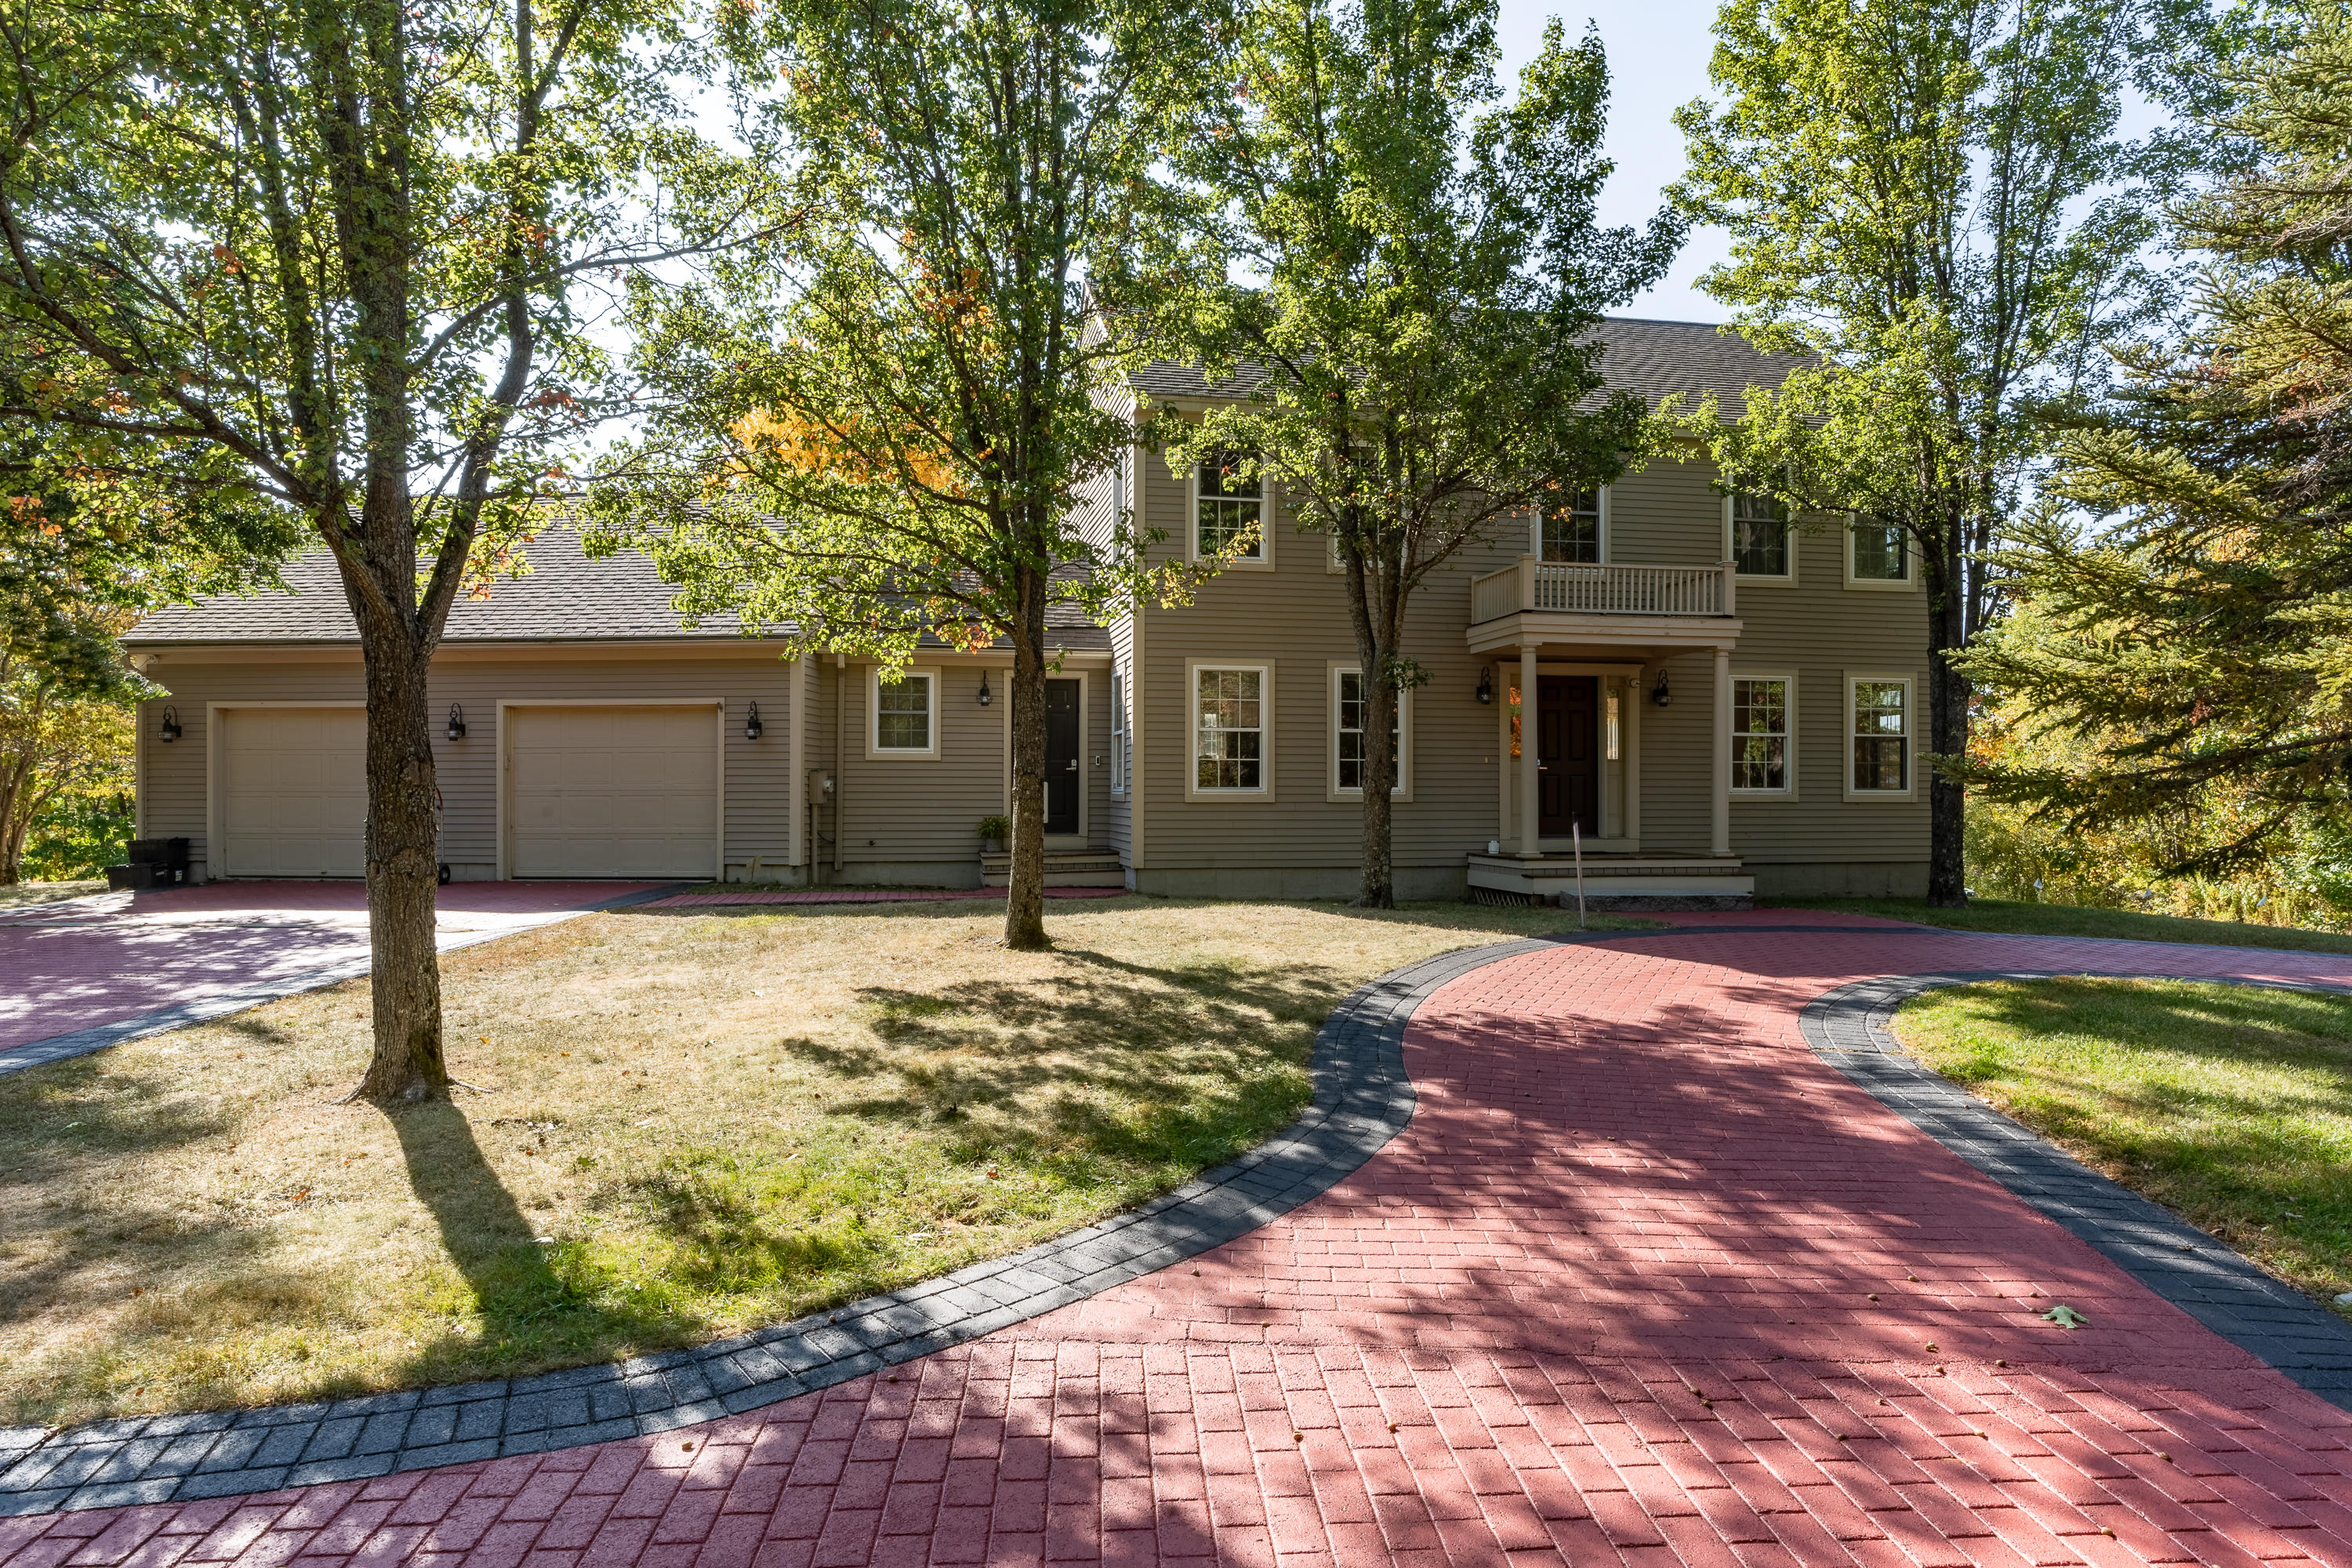 Main image for MLS listing 1471022